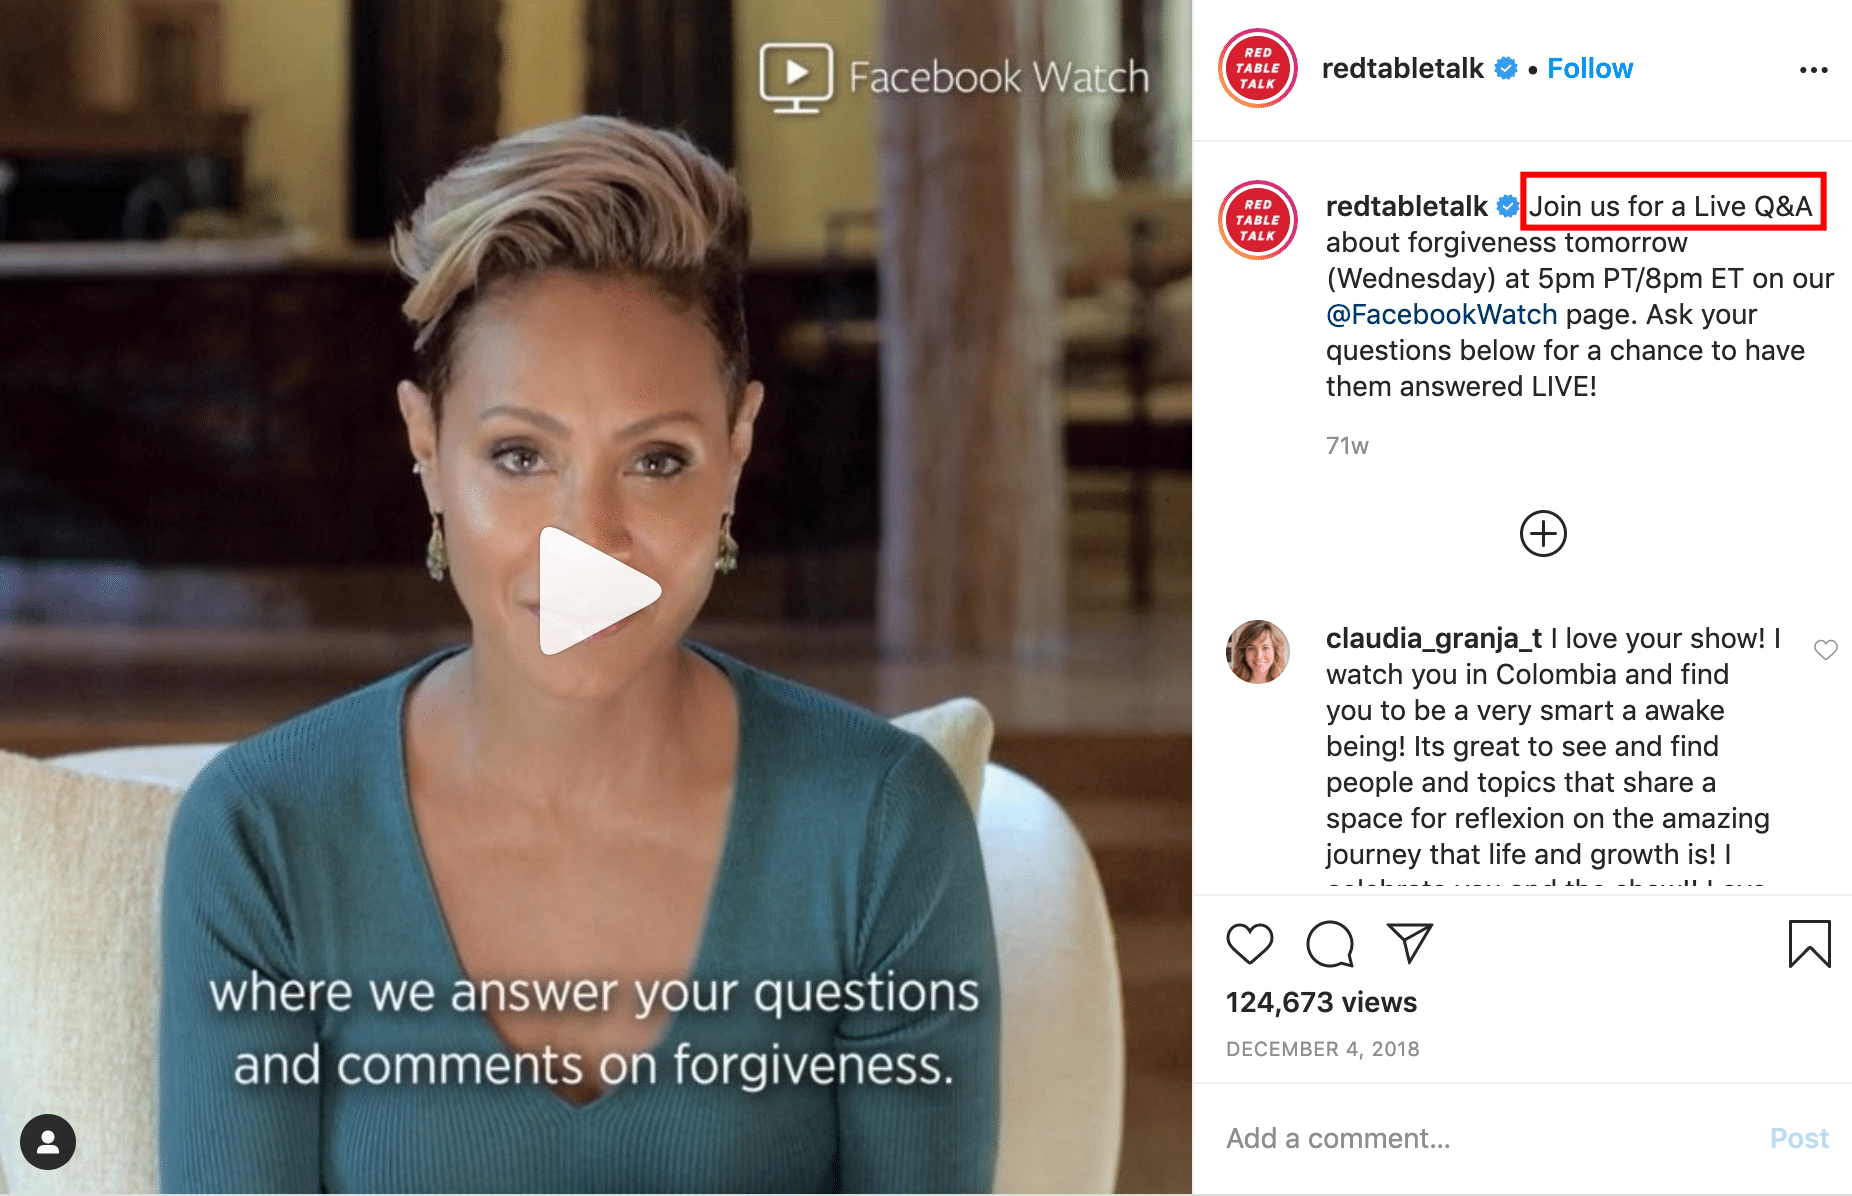 Live Q&A about forgiveness tomorrow by redtabletalk